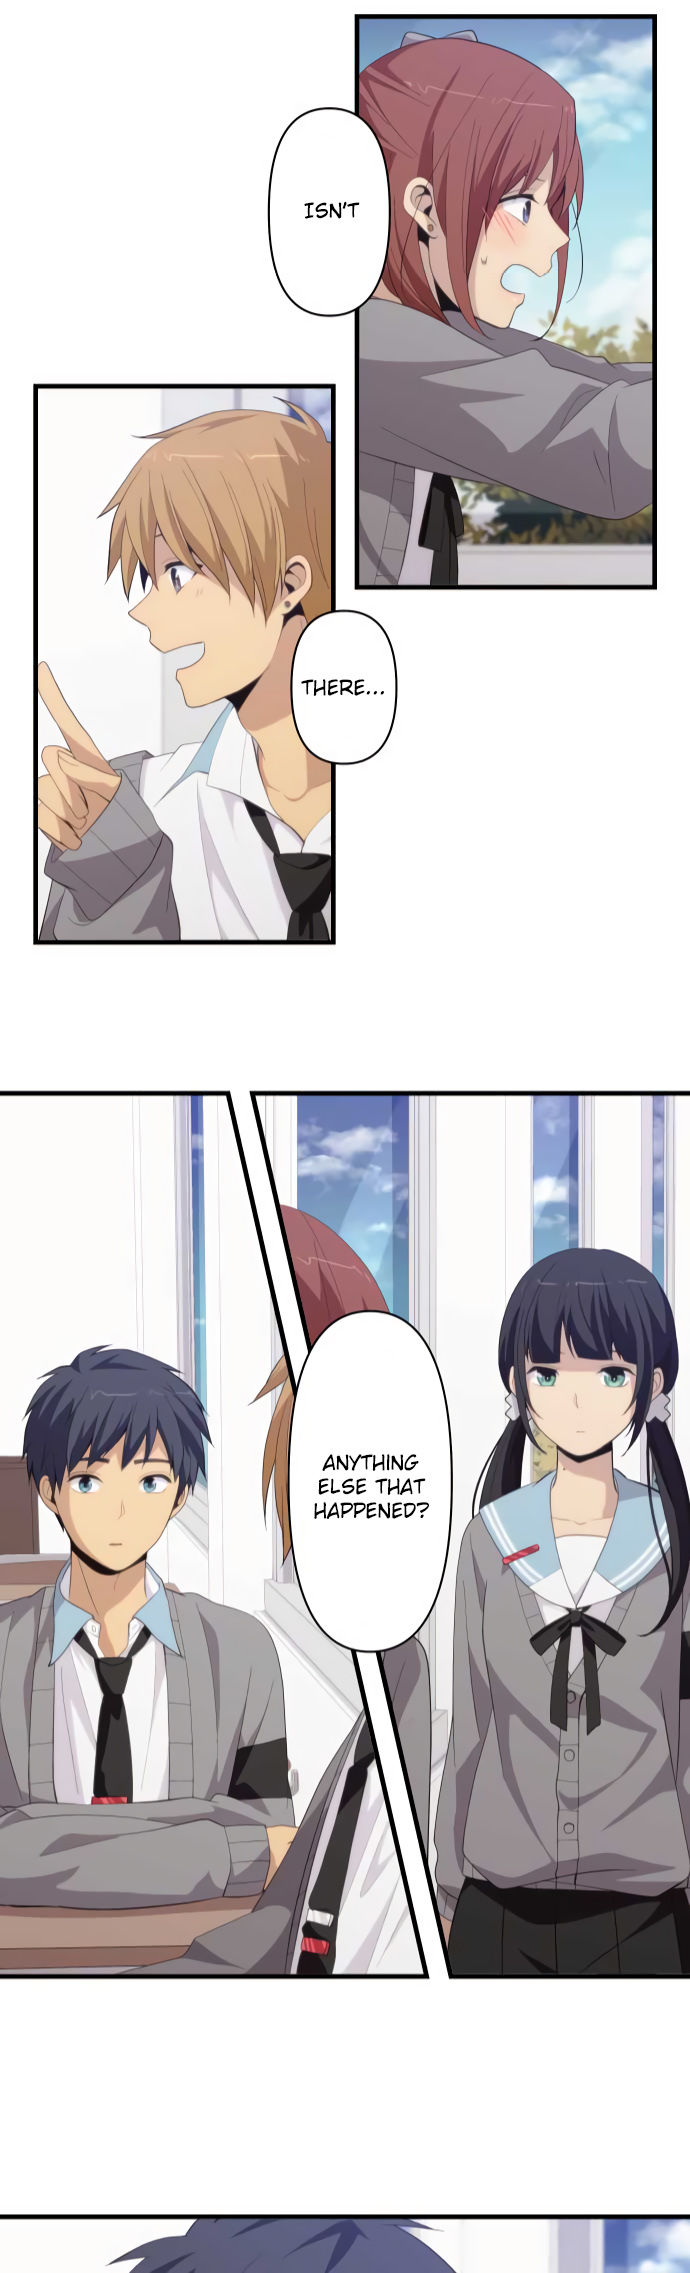 ReLIFE Chapter 187  Online Free Manga Read Image 22